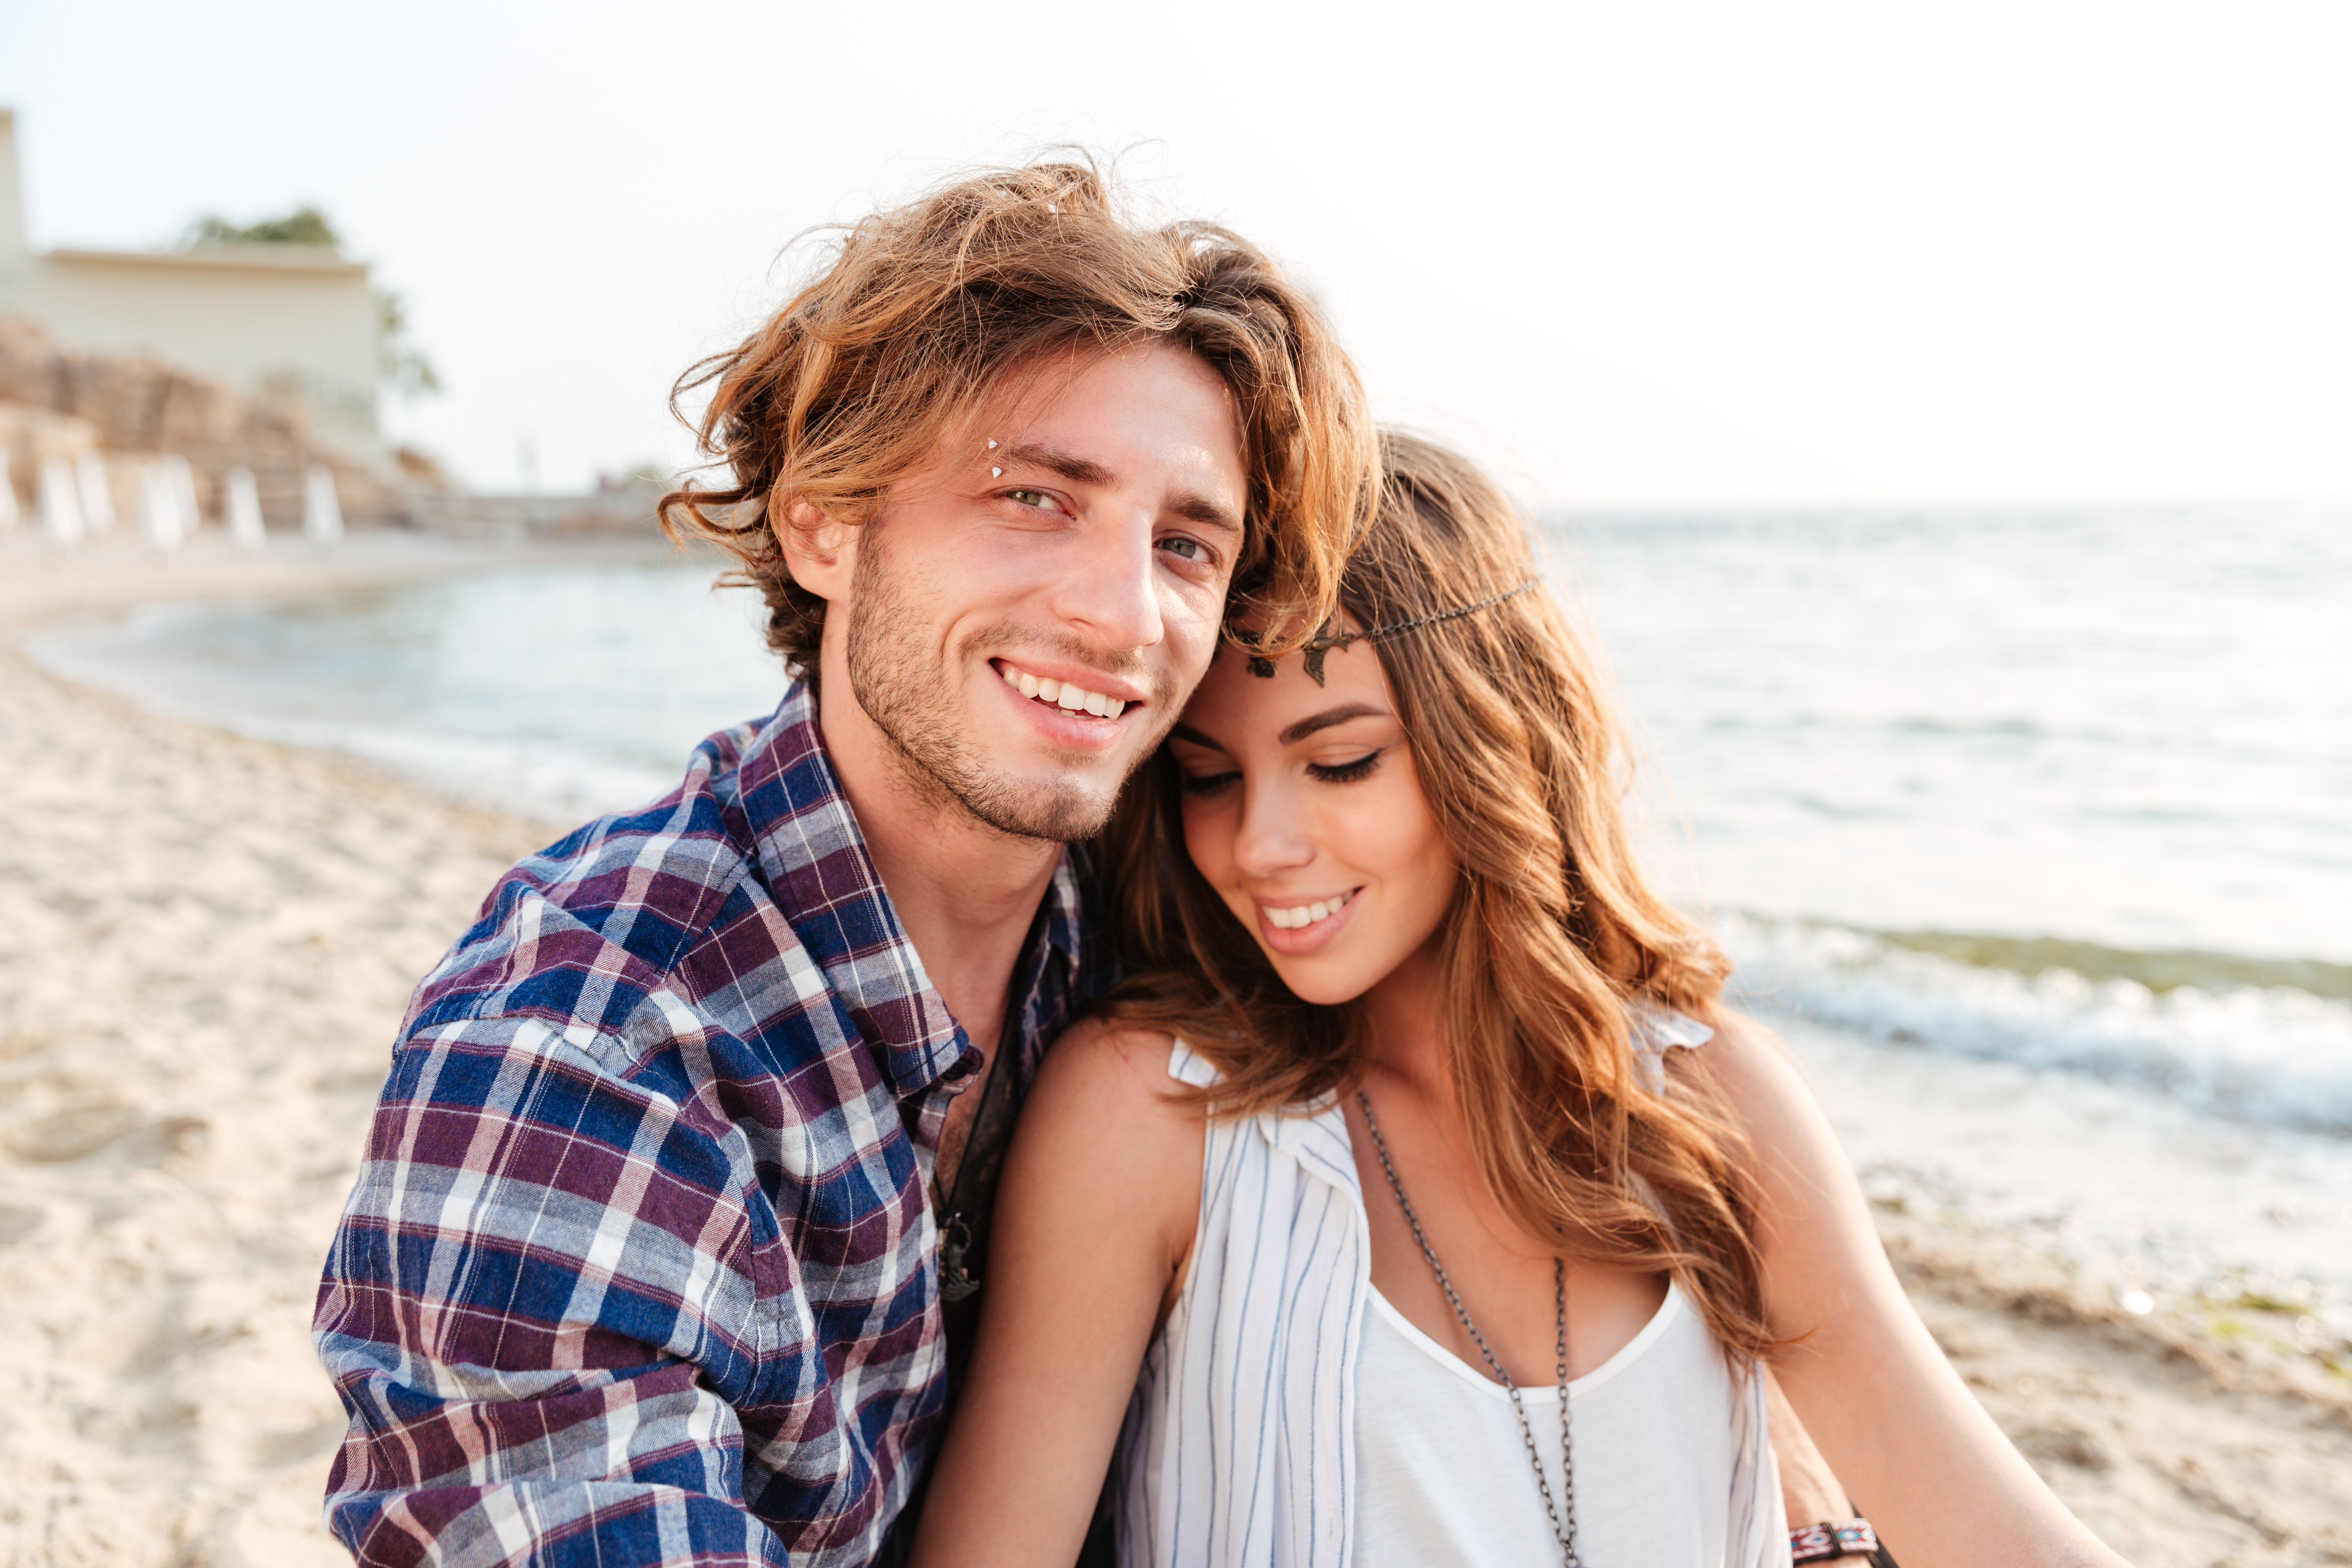 graphicstock-sensual-young-couple-sitting-and-smiling-on-the-beach_BdrQVFtH3x